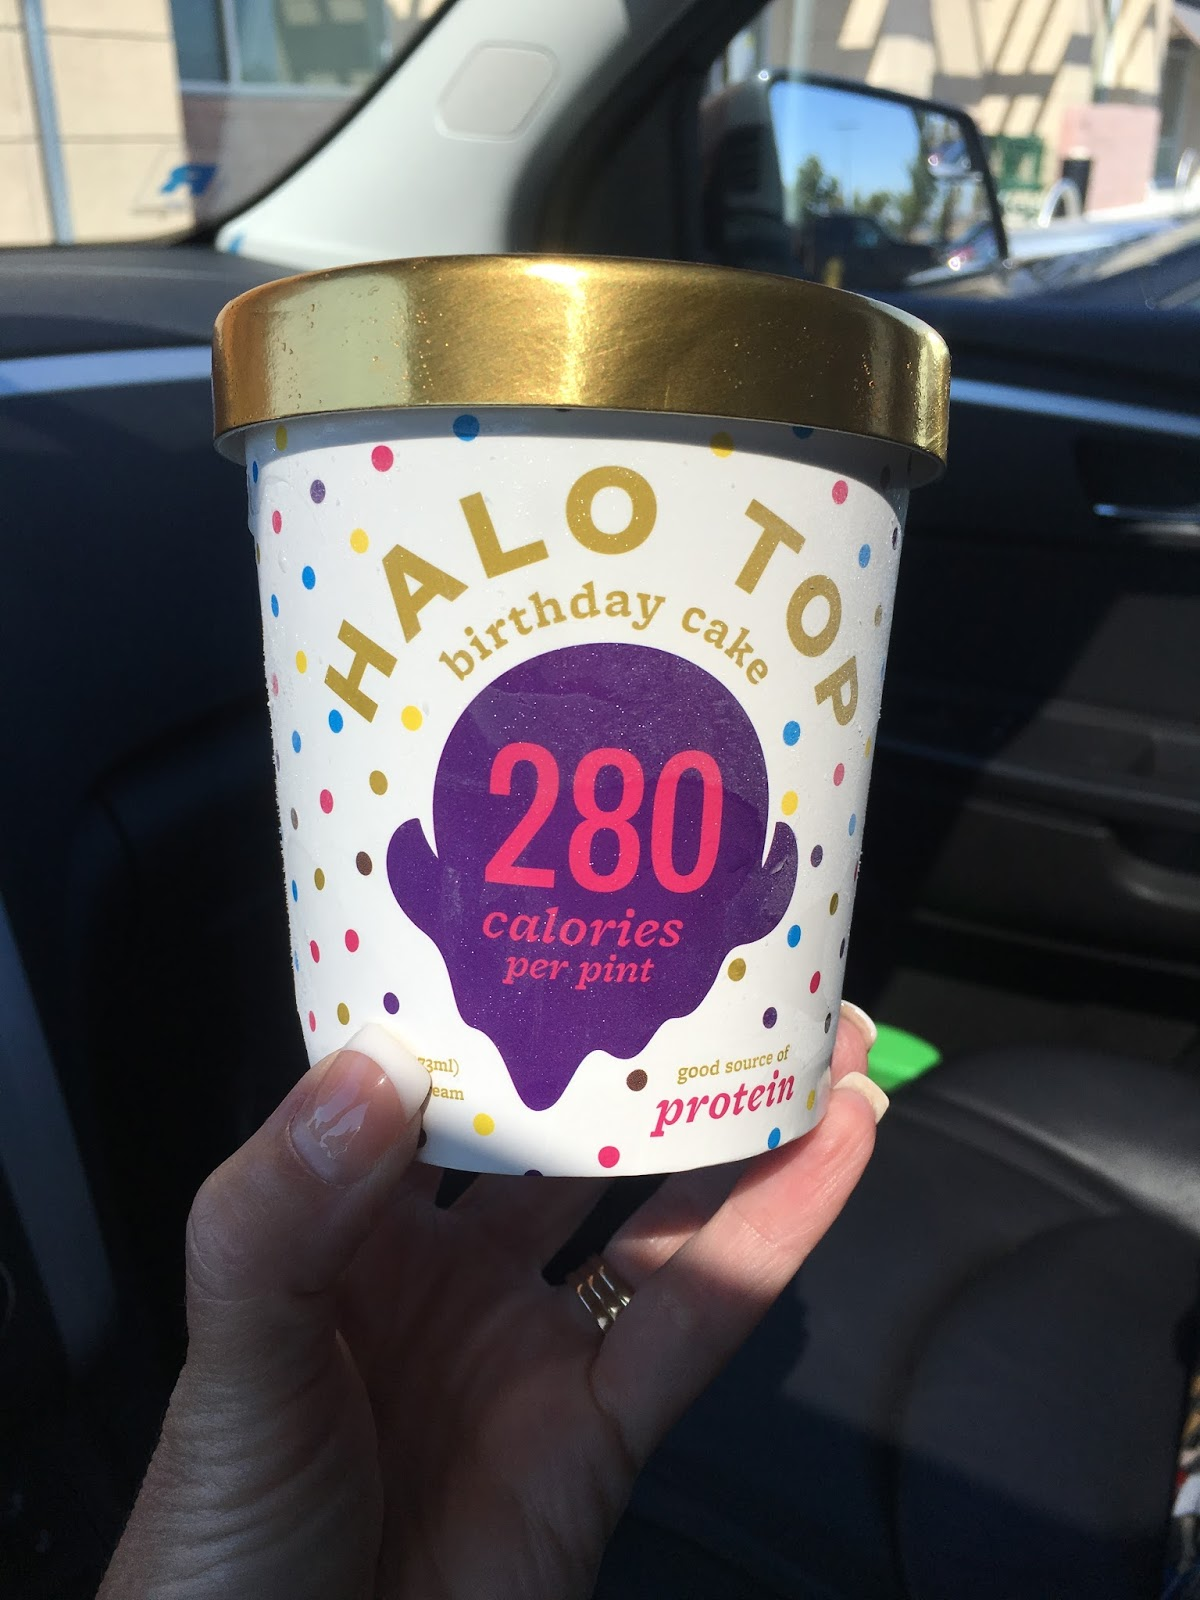 I FINALLY Got My Hands On Some Birthday Cake Flavor Halo Top Ive Been Telling Yall About This Ice Cream For A While Now And In Search Of The